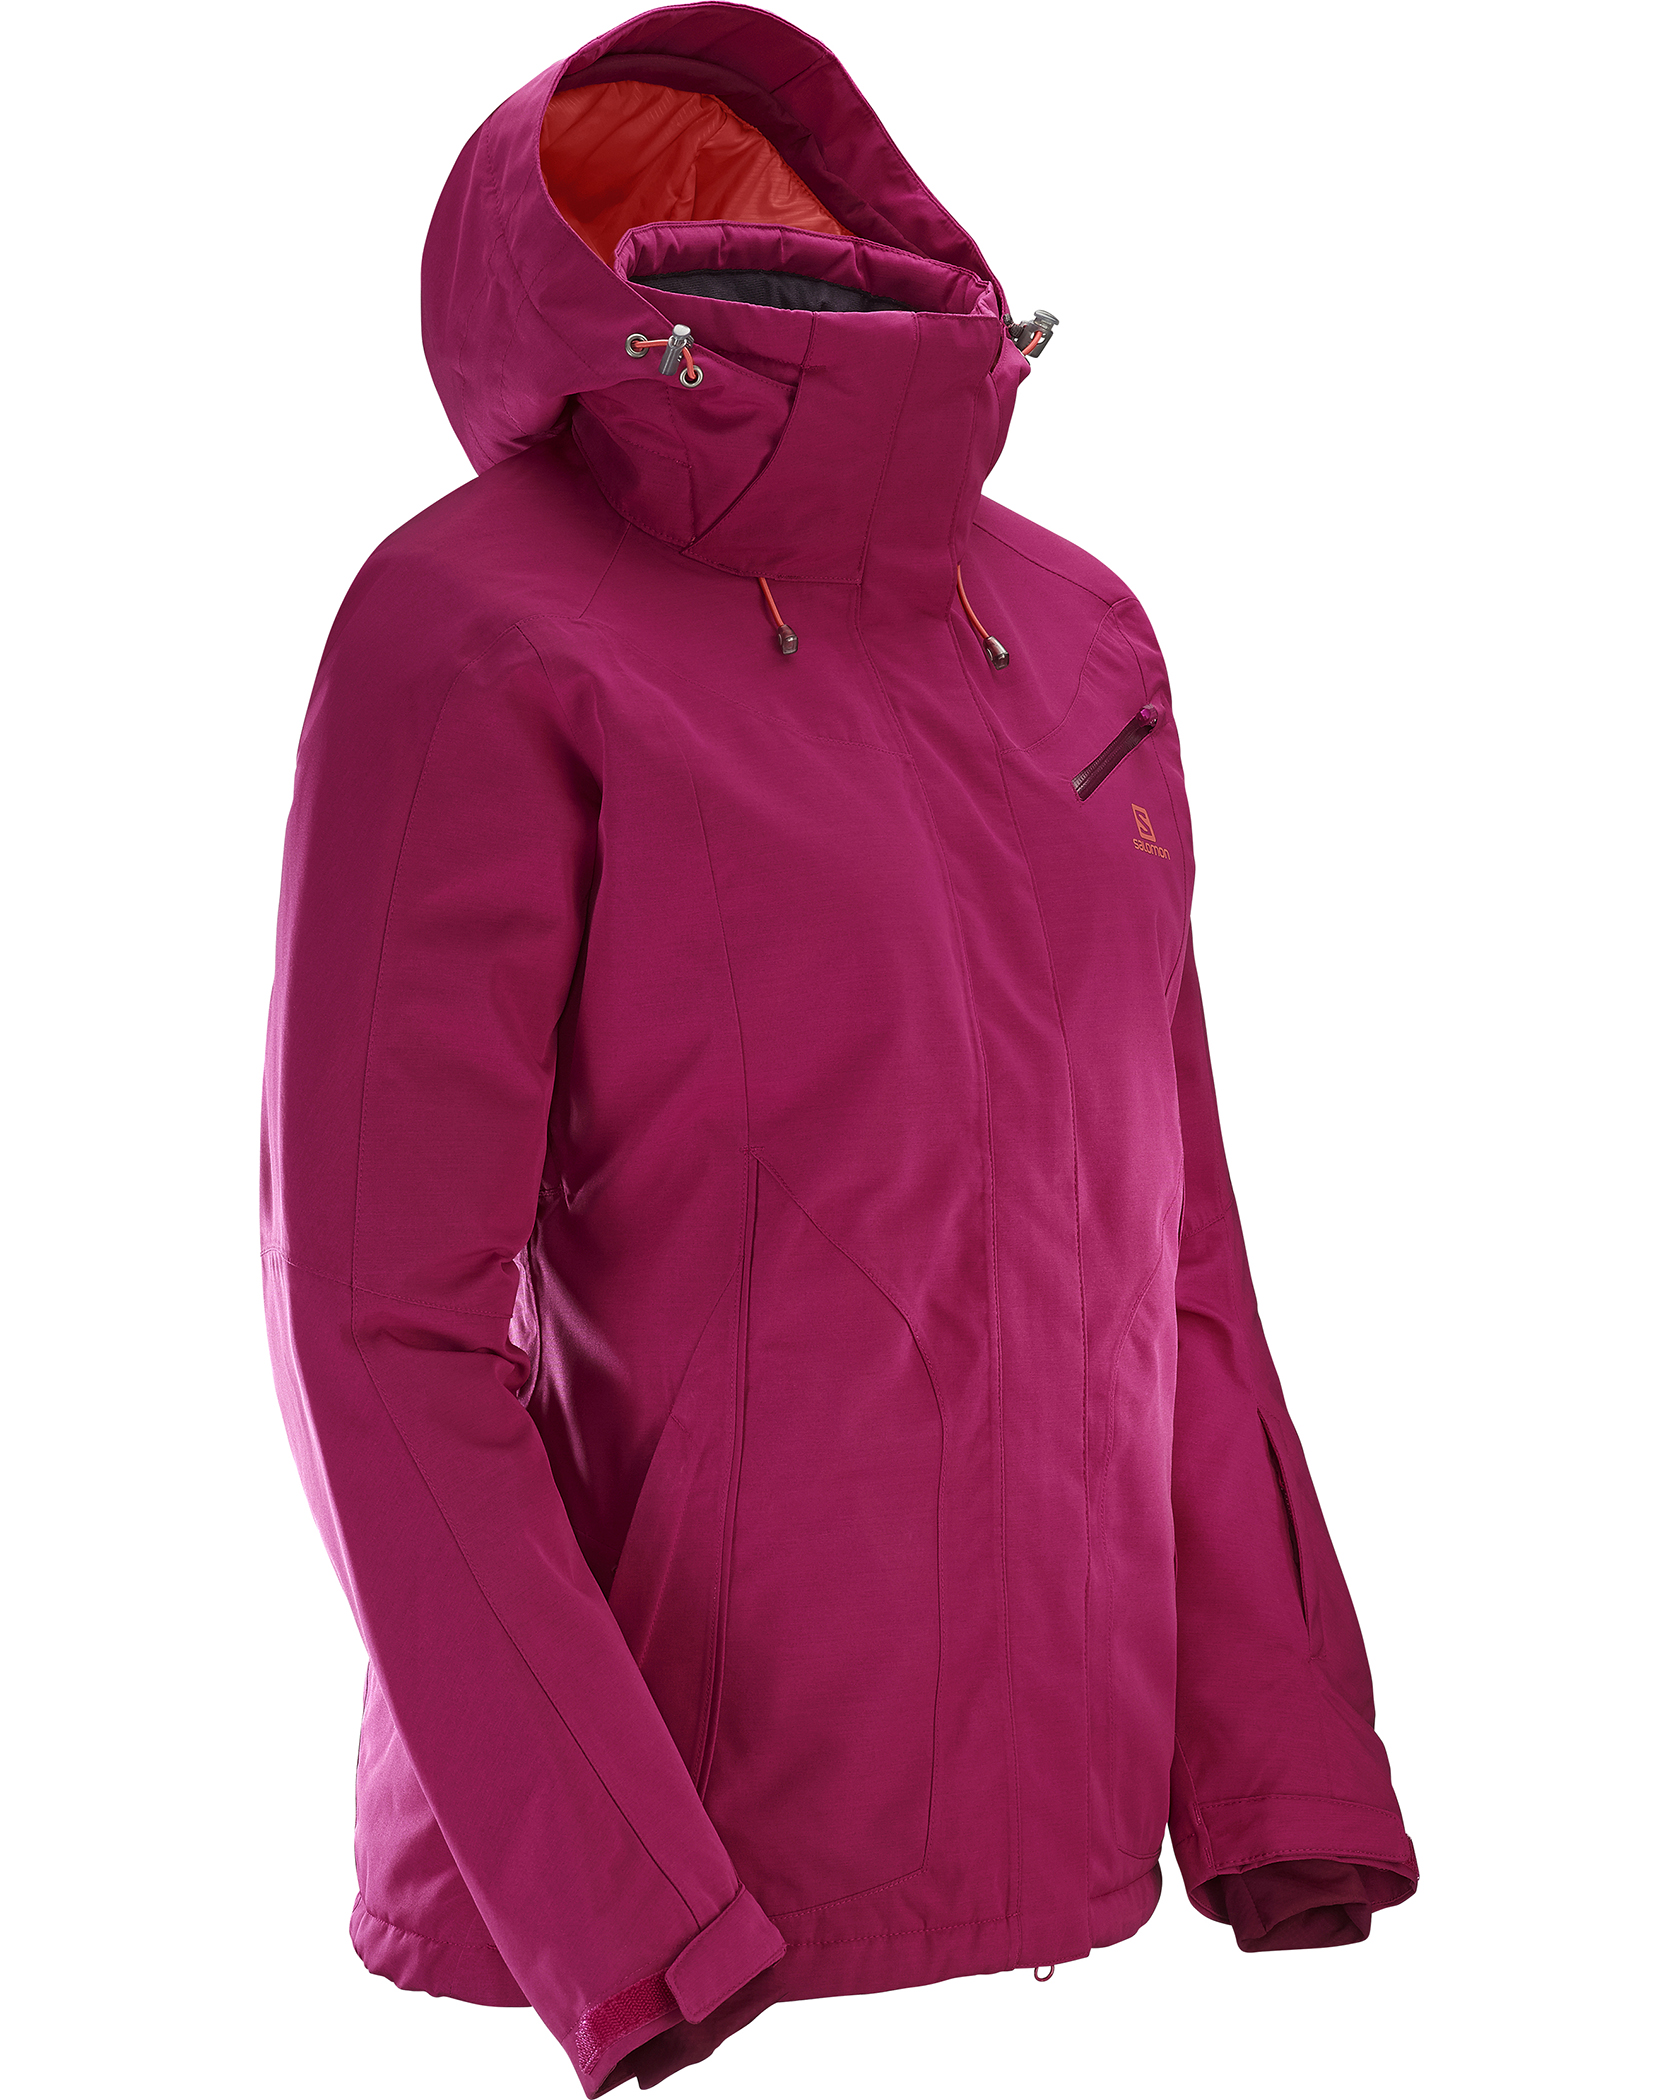 Fantasy Jacket W Cerise Heather